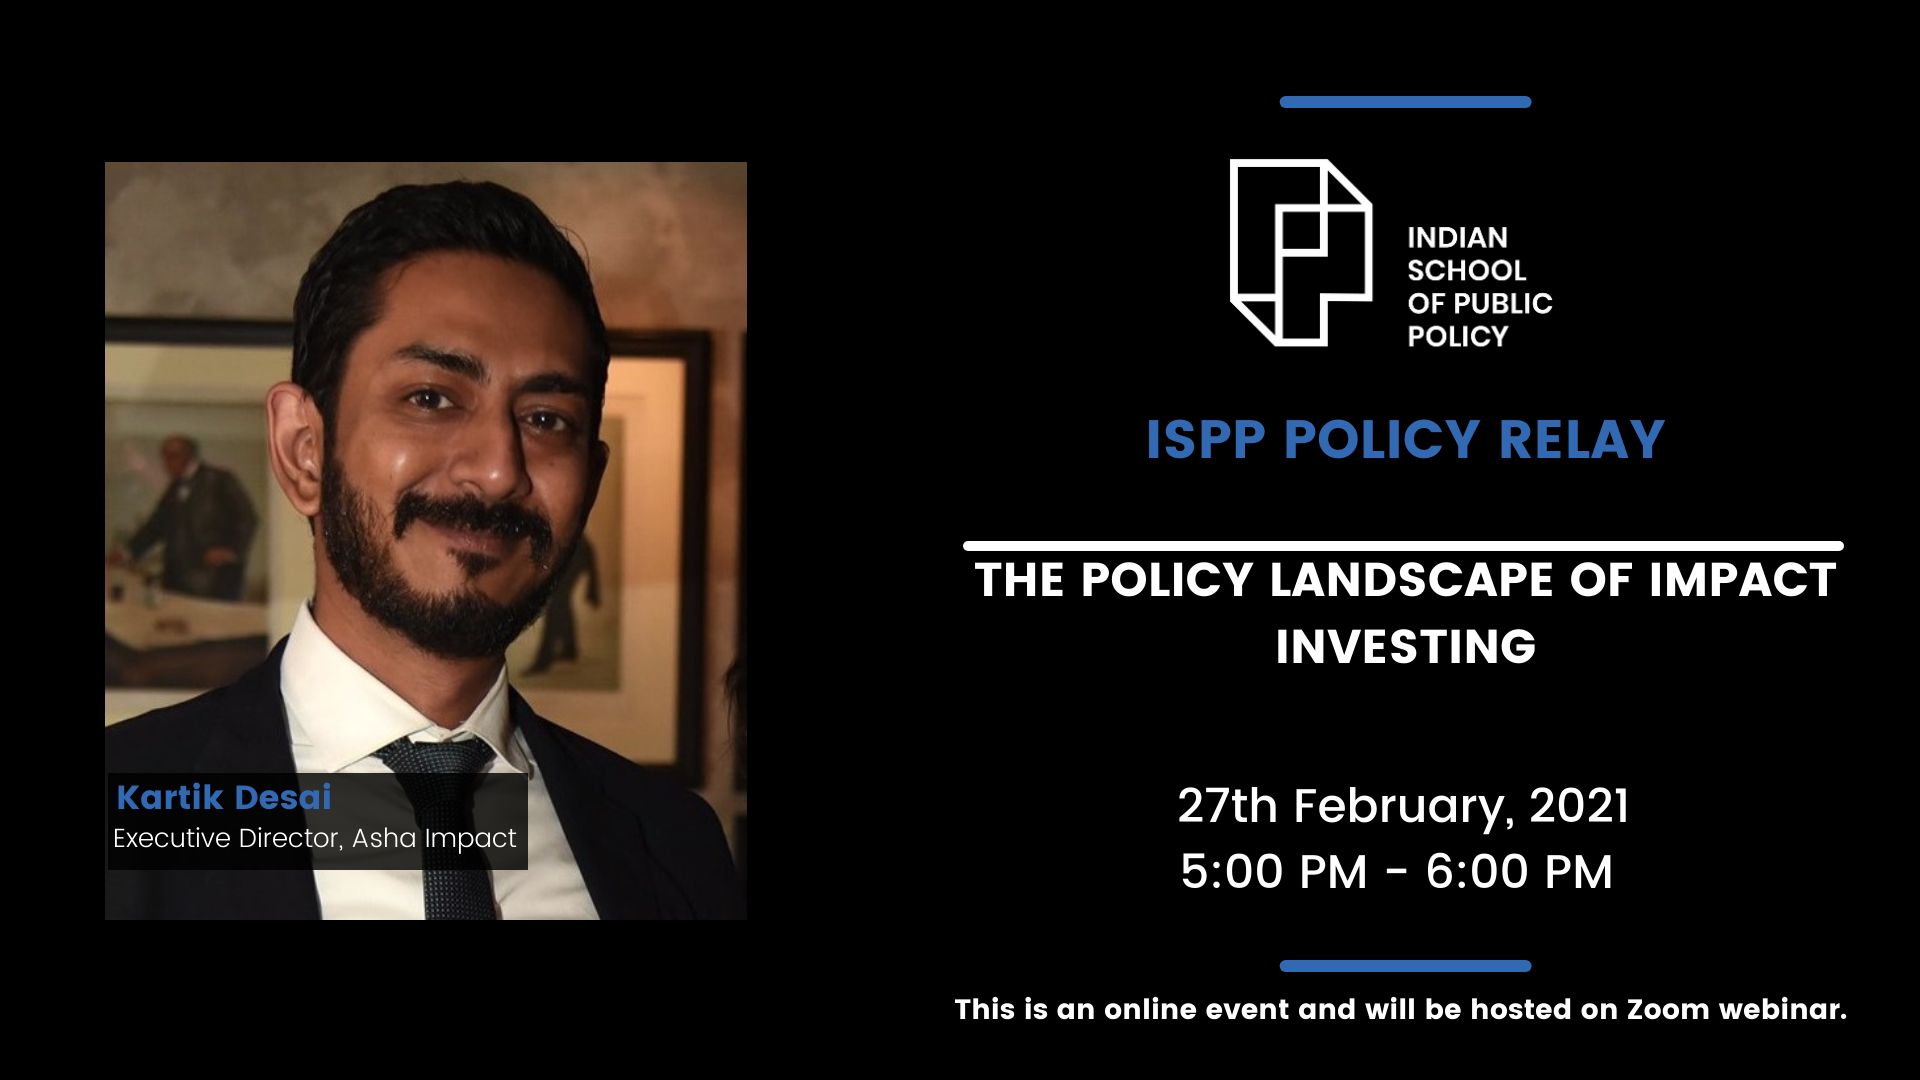 ISPP Policy Relay: The Policy Landscape of Impact Investing with Kartik Desai